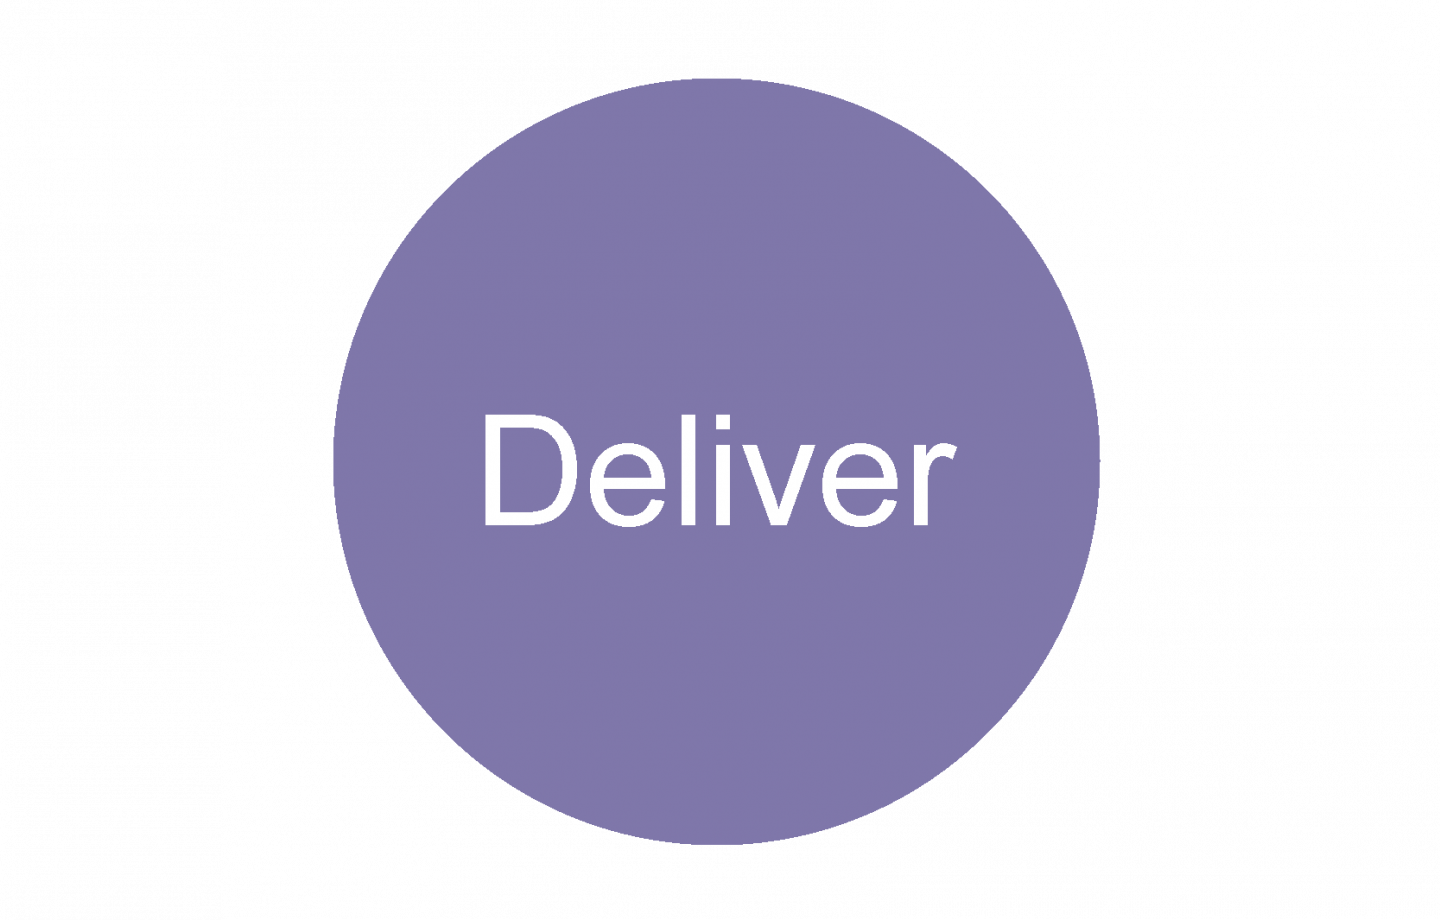 Deliver circle